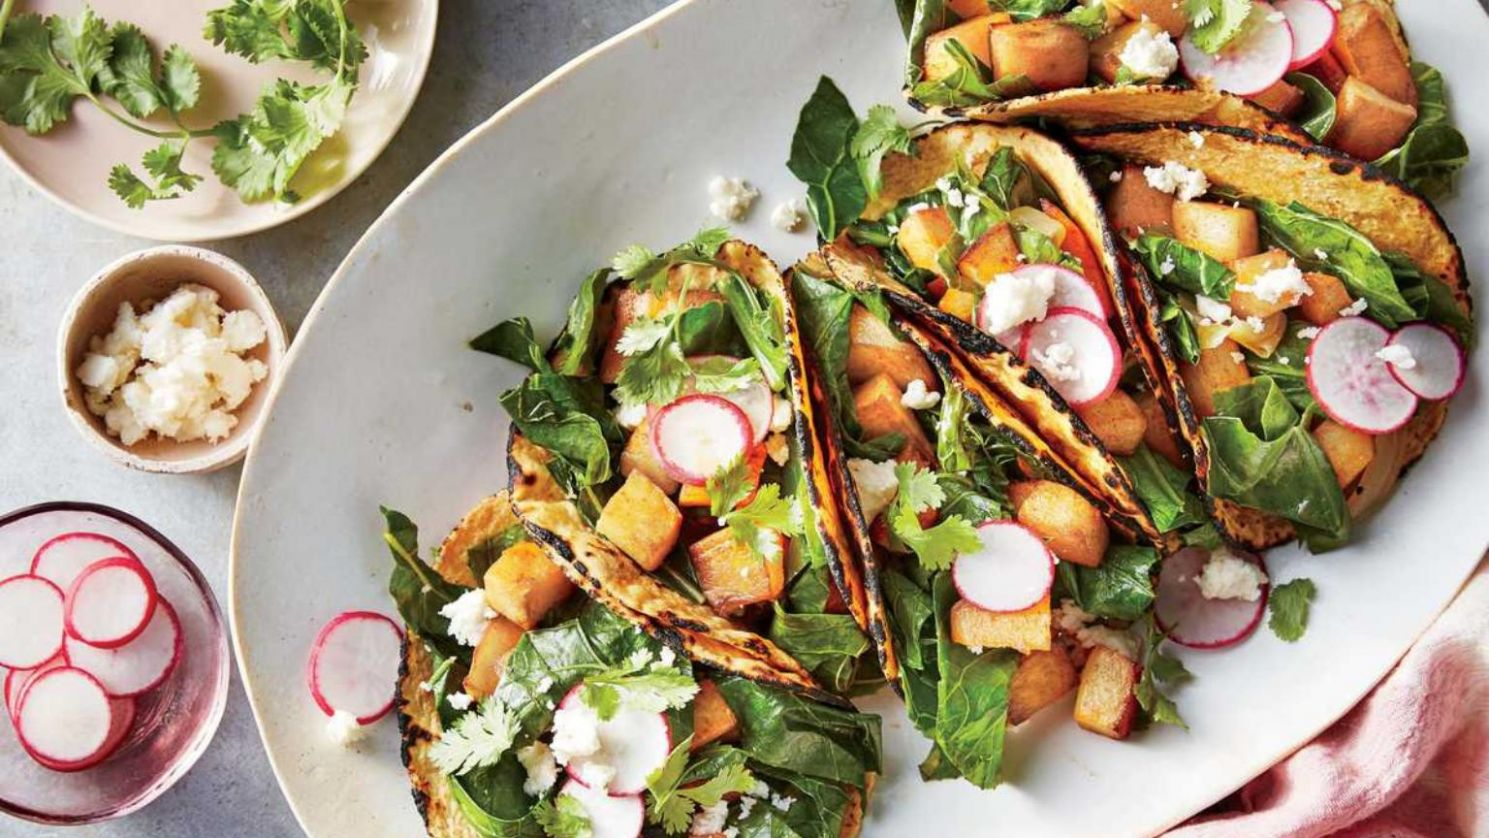 11 Easy Vegetarian Recipes for Busy Weeknights